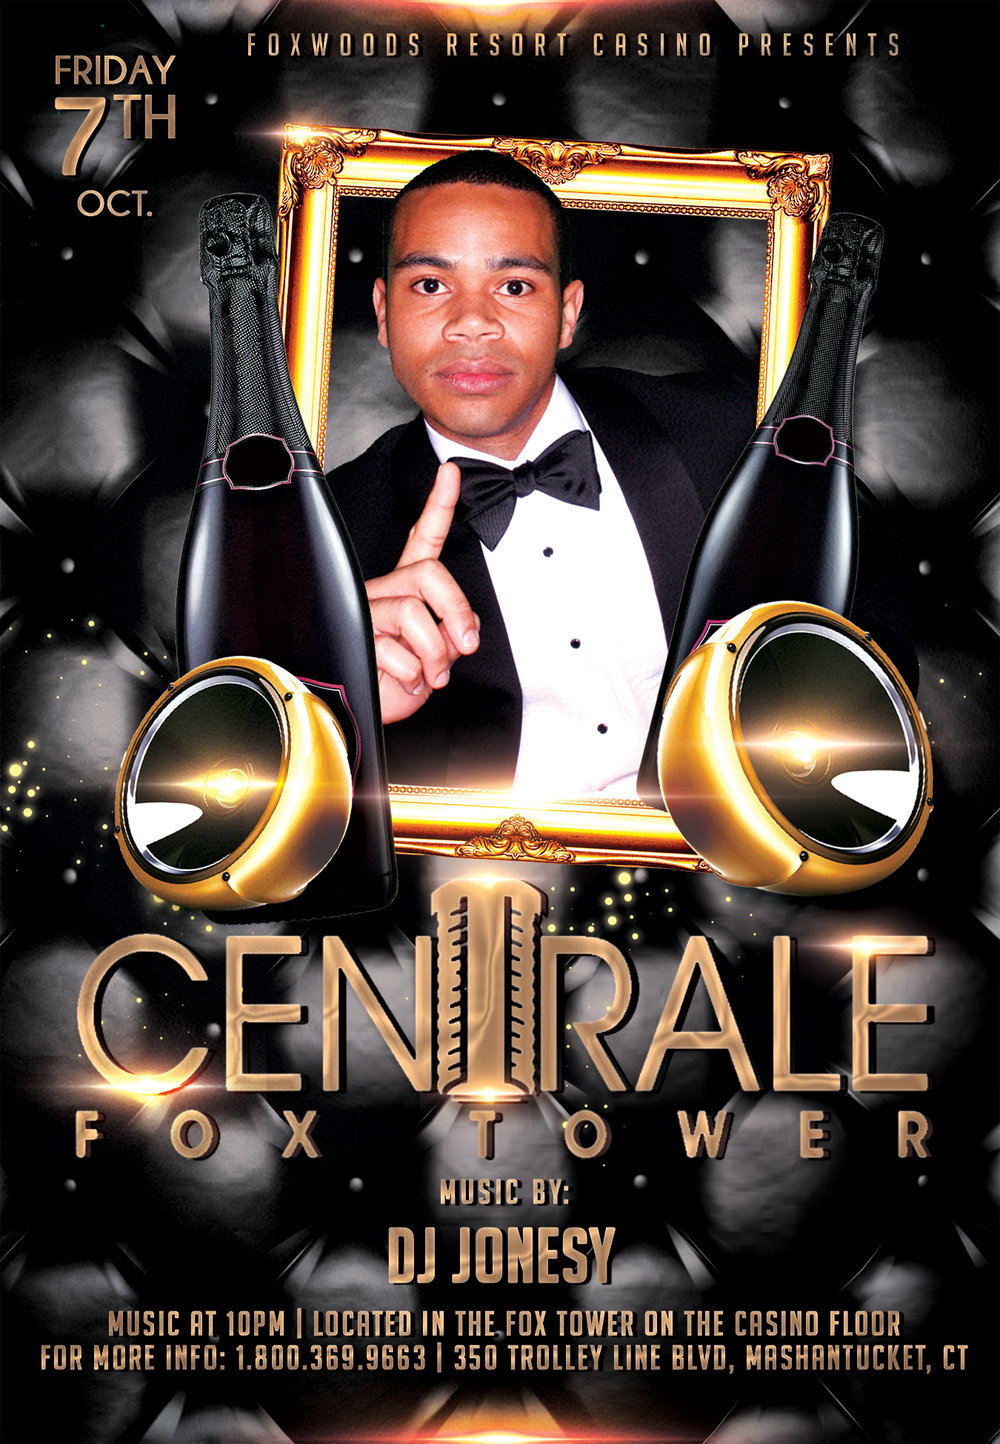 Friday, October 7th join me Centrale Fox Tower in Foxwoods Resort Casino for music by yours truly 10pm-close.